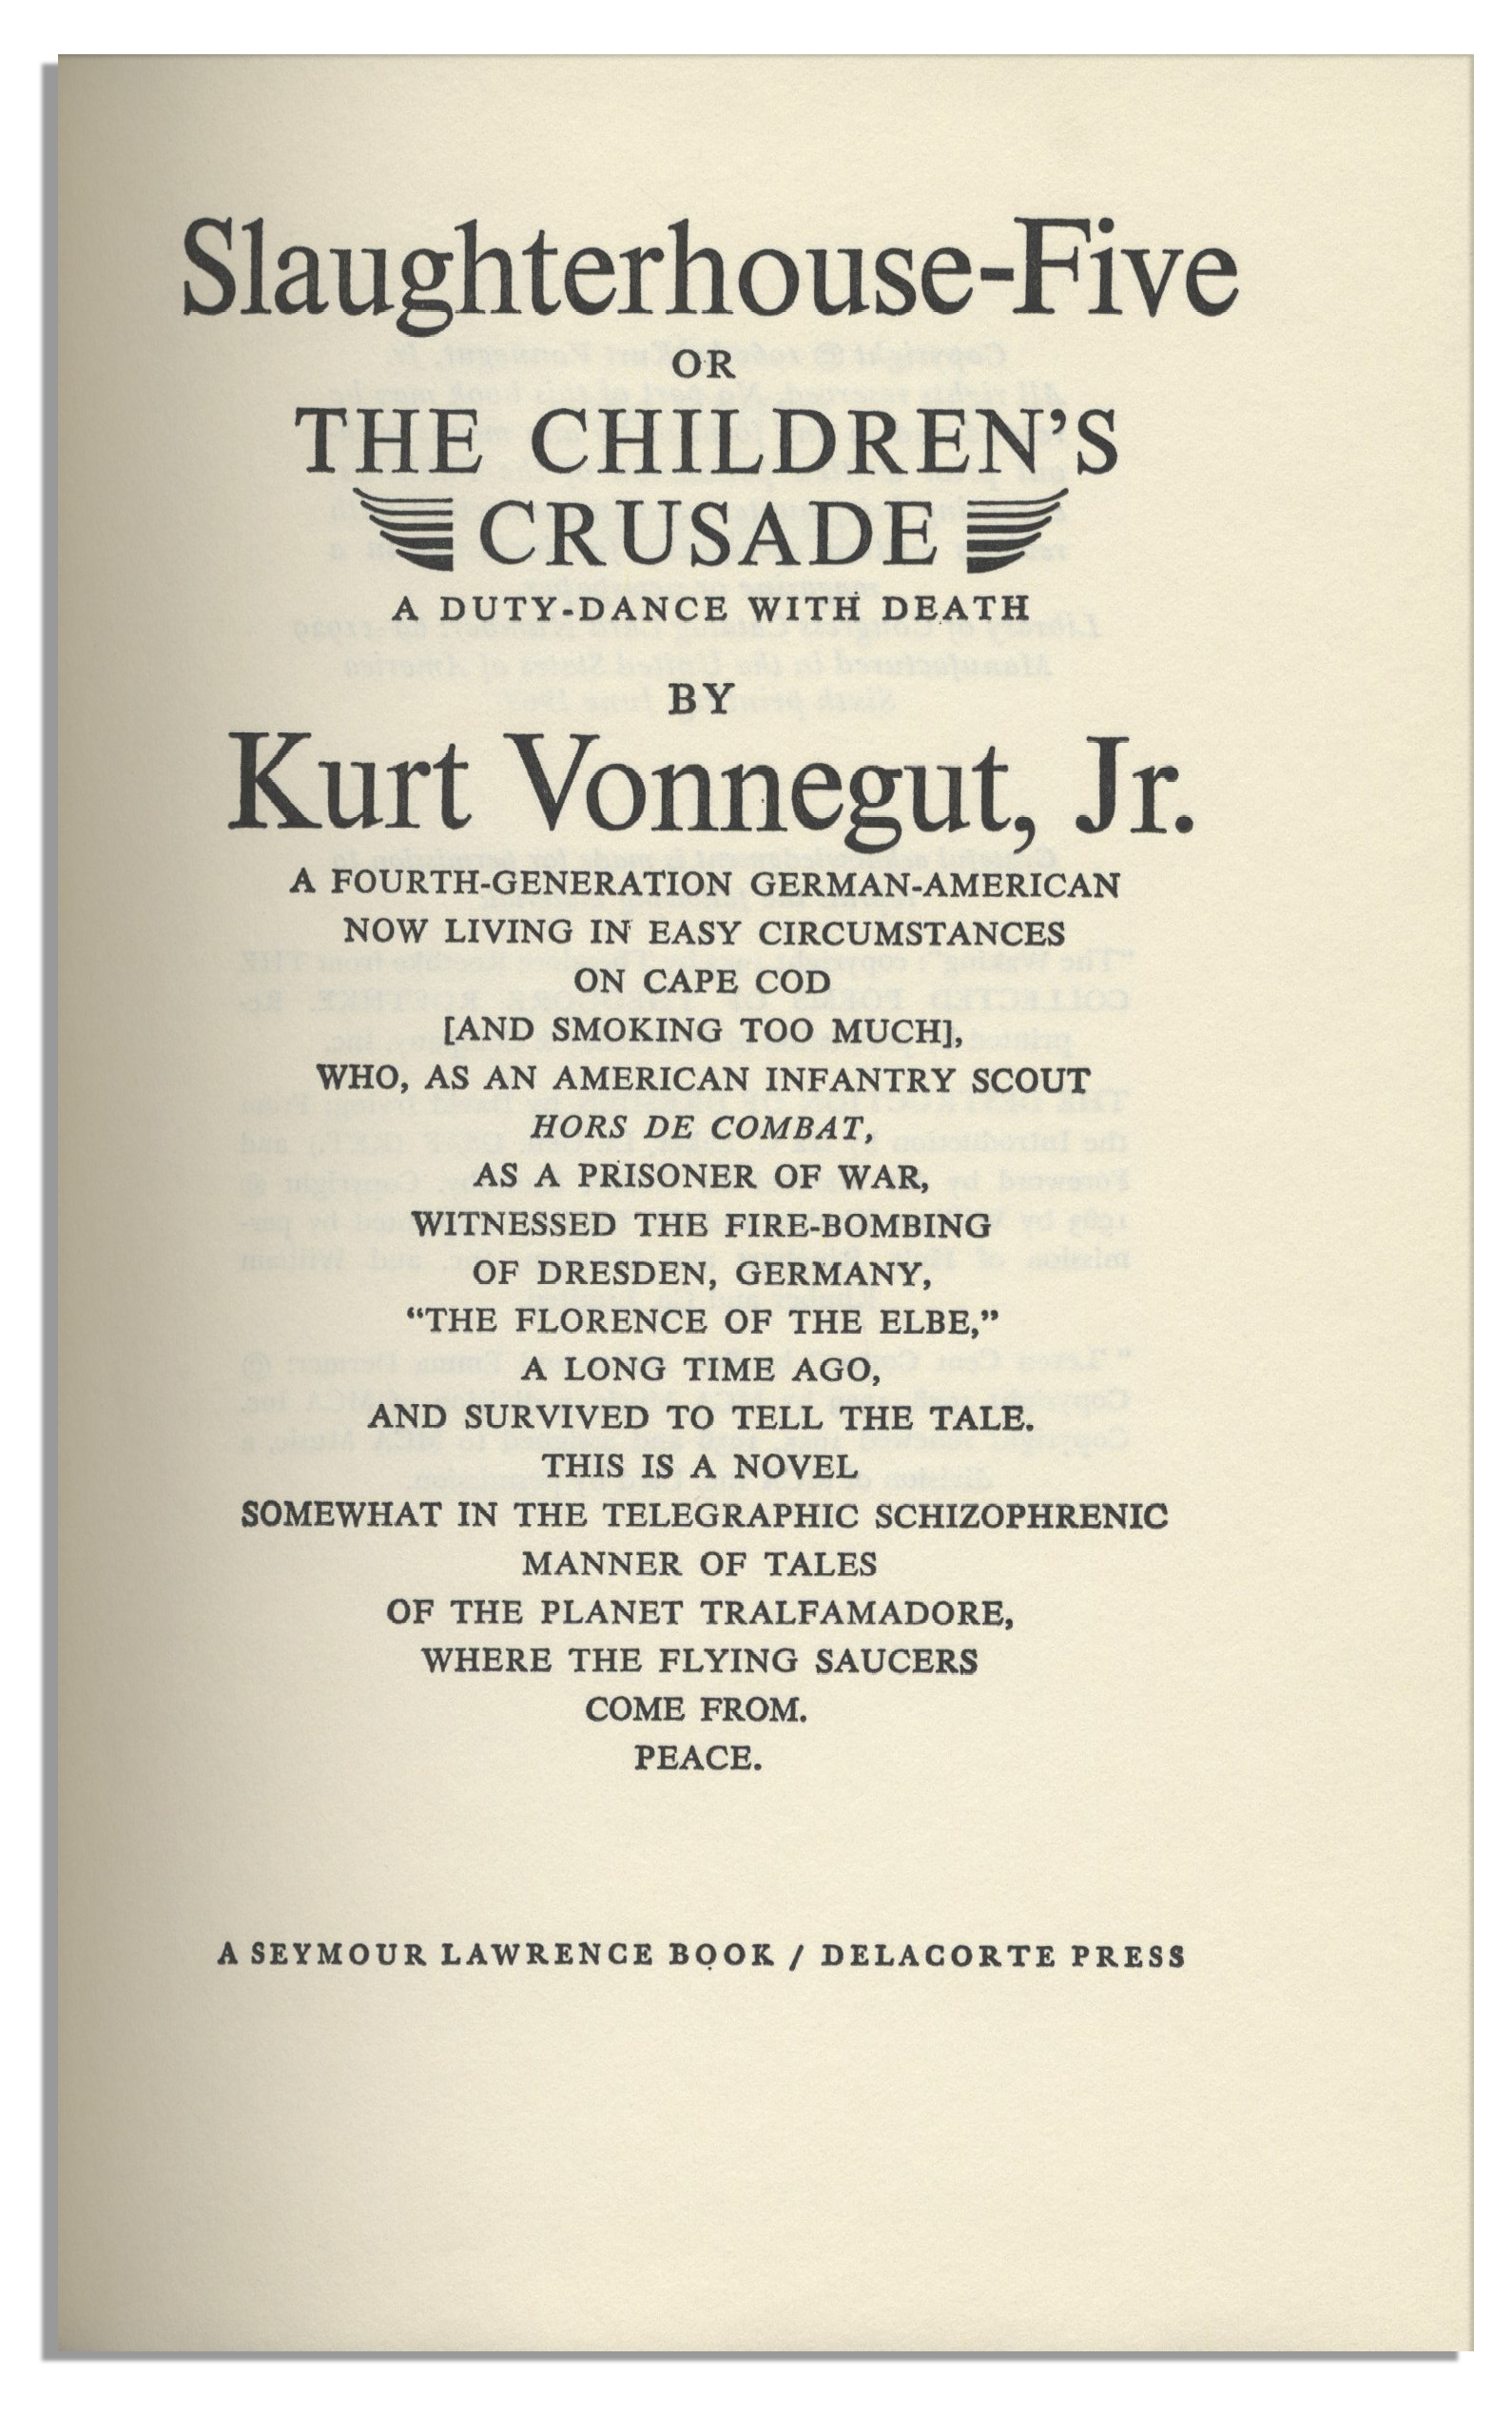 critical anylasis of slaughterhousefive Slaughterhouse five critical analysis topics: slaughterhouse vonnegut chooses to use special literary techniques that better explain his own encounters in war.